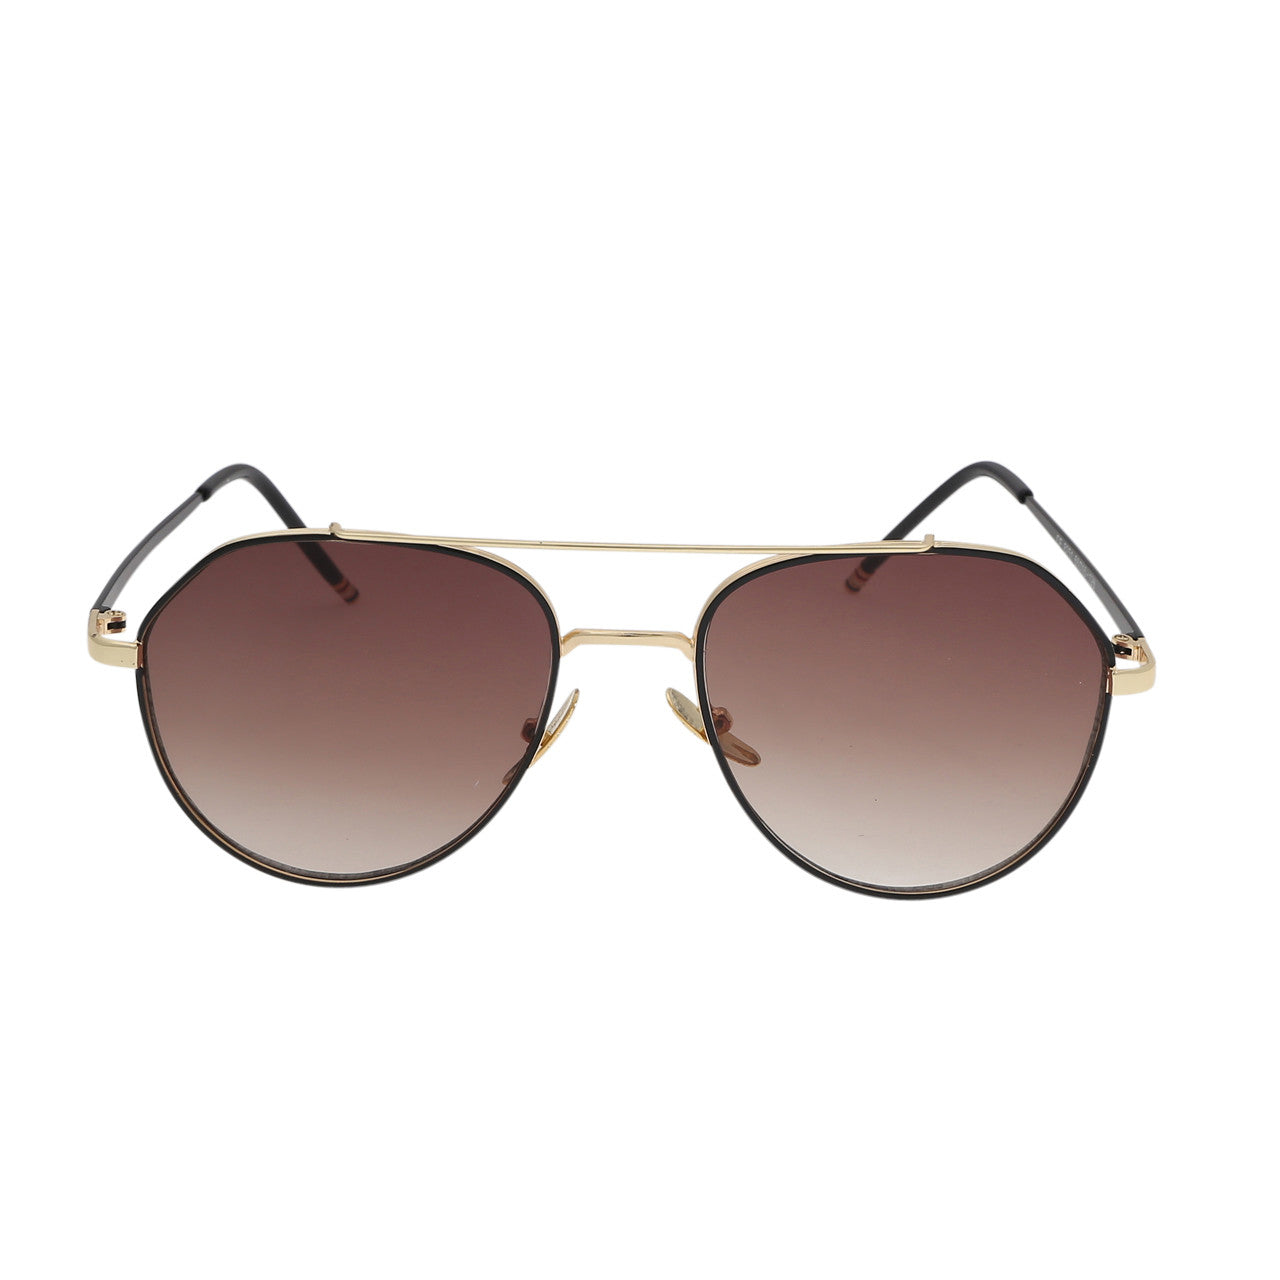 Aspect Eyewear Eden 8251 Sunglasses